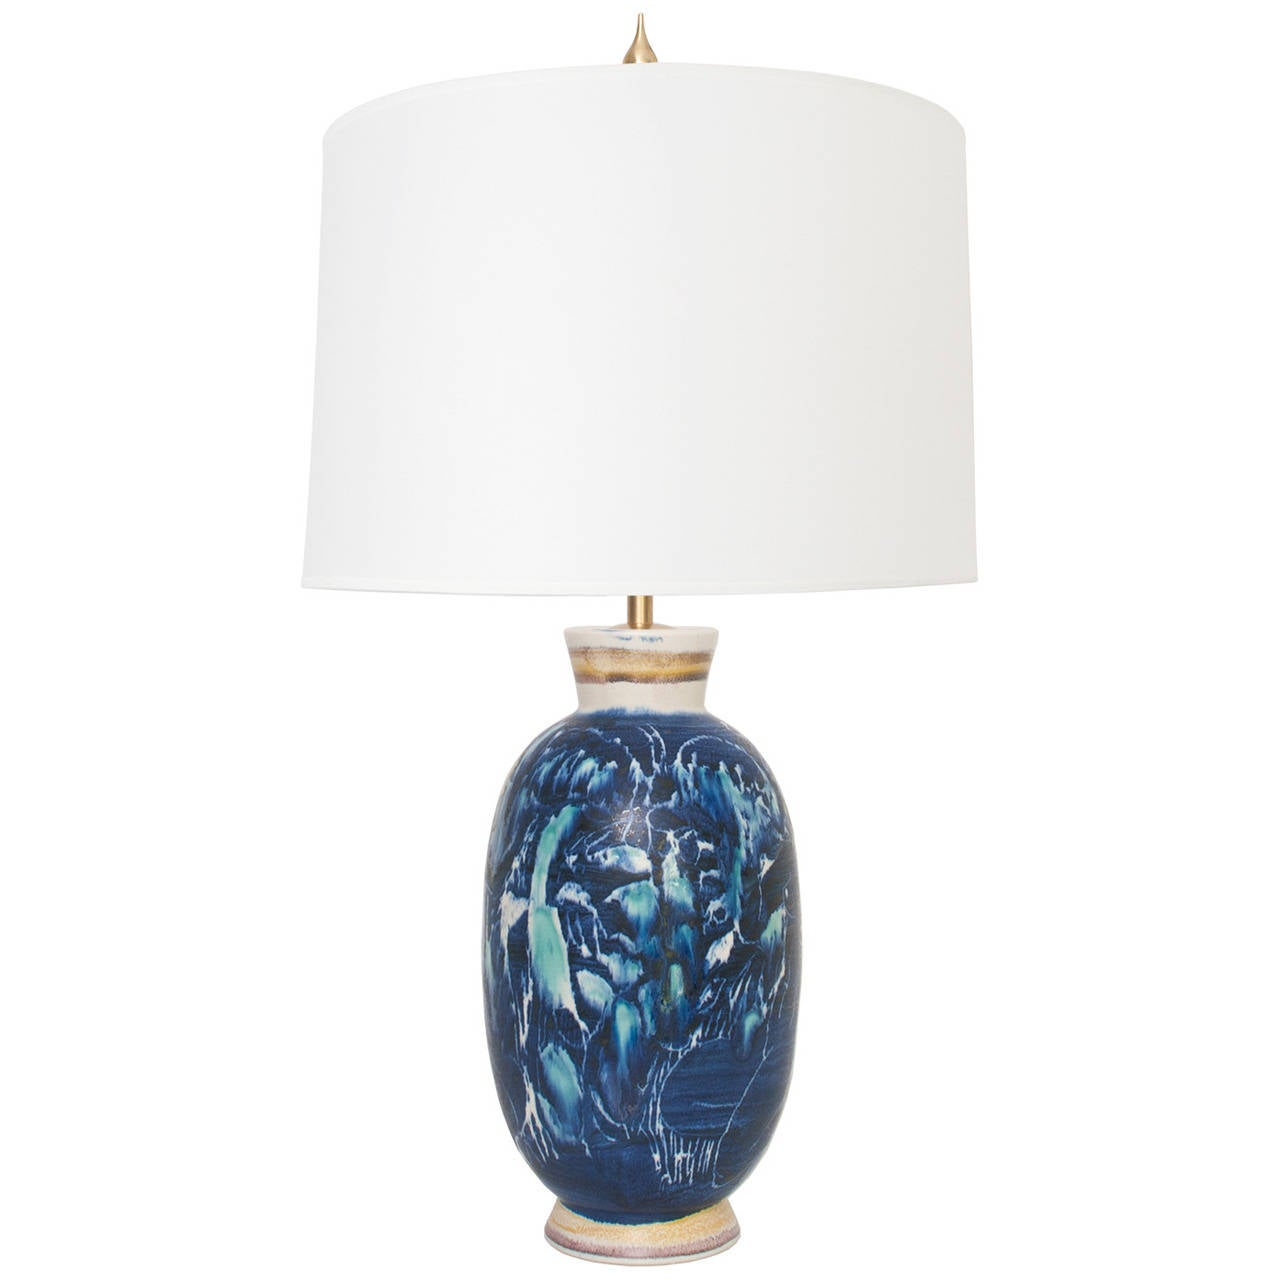 swedish unique ceramic table lamp by carl harry stalhane for sale at. Black Bedroom Furniture Sets. Home Design Ideas